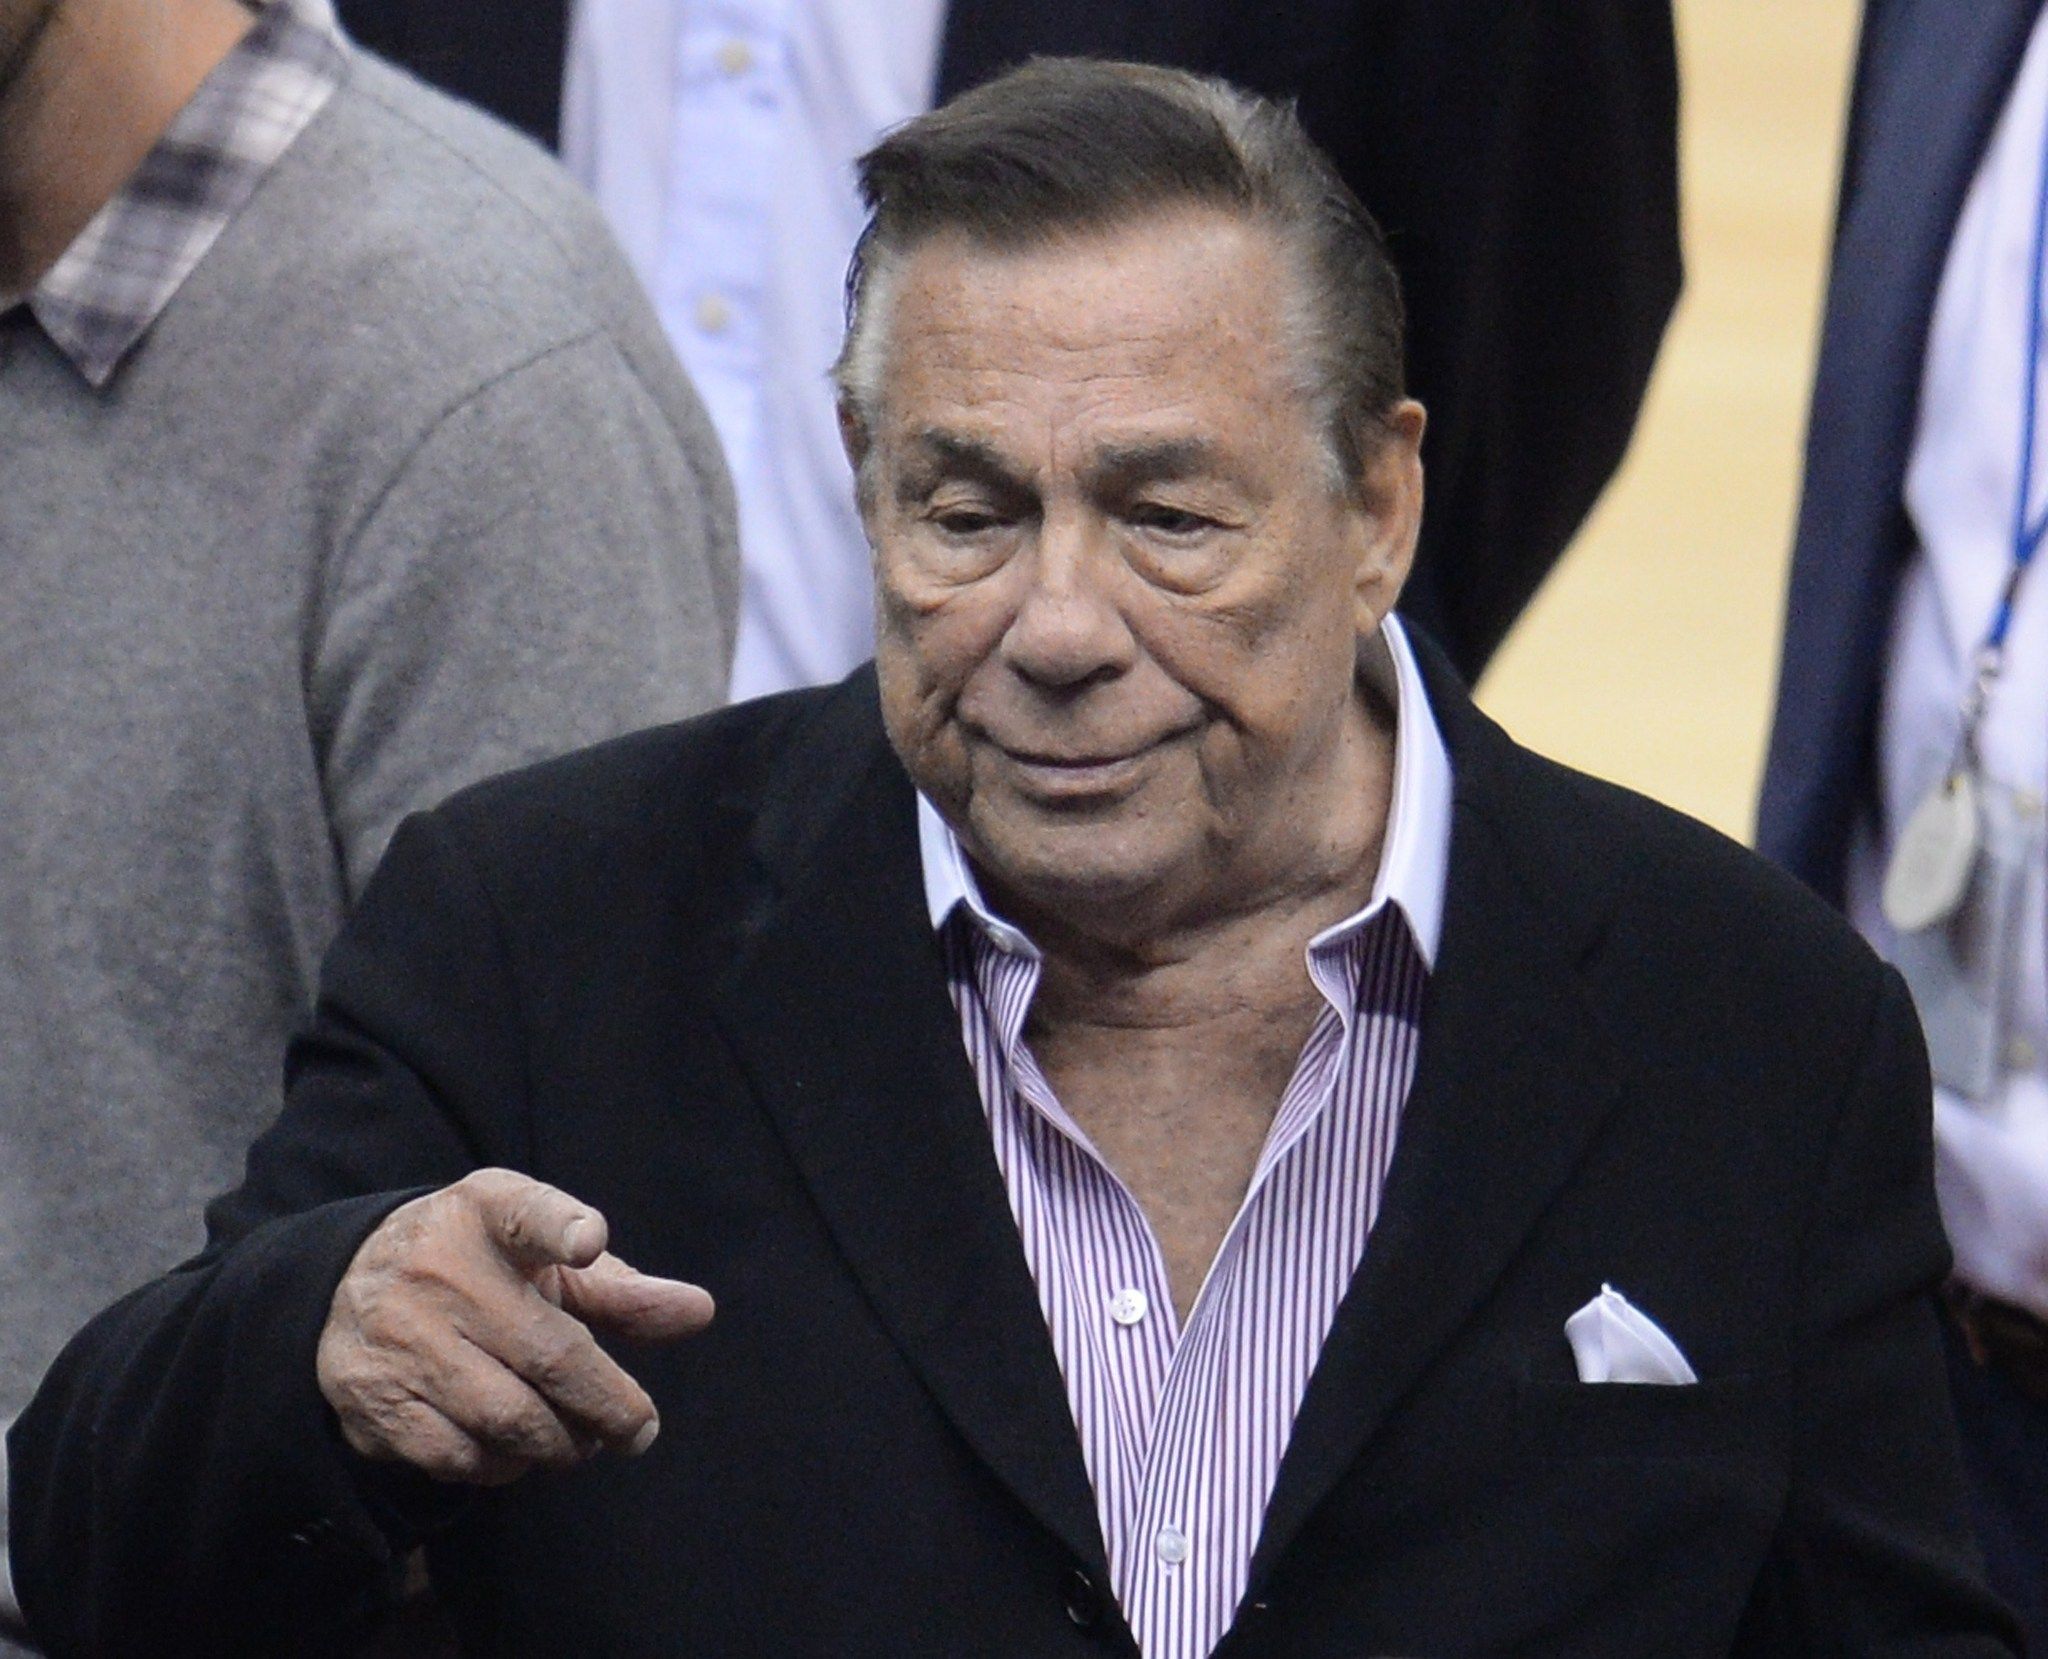 Donald Sterling out of legal options to unwind Clippers' sale